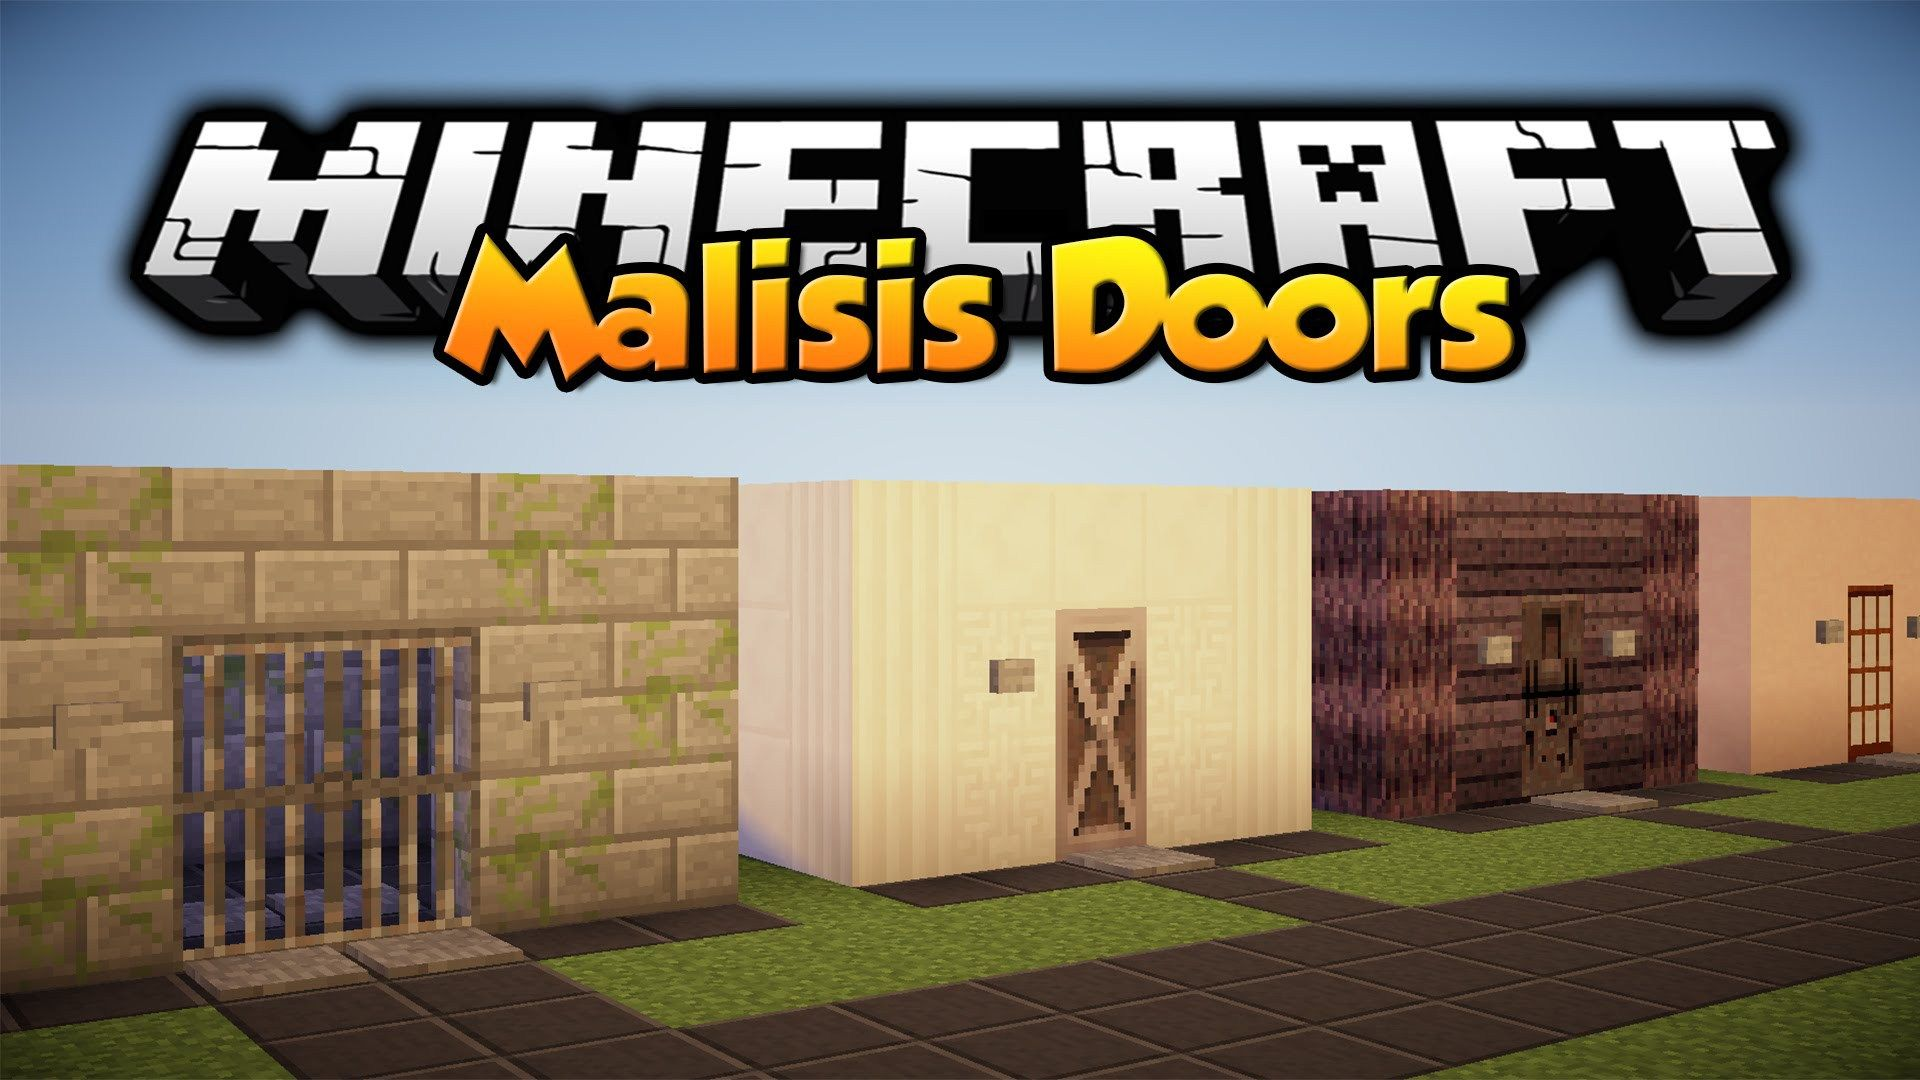 The Malisis Doors Mod 1.11 provides numerous new doors to